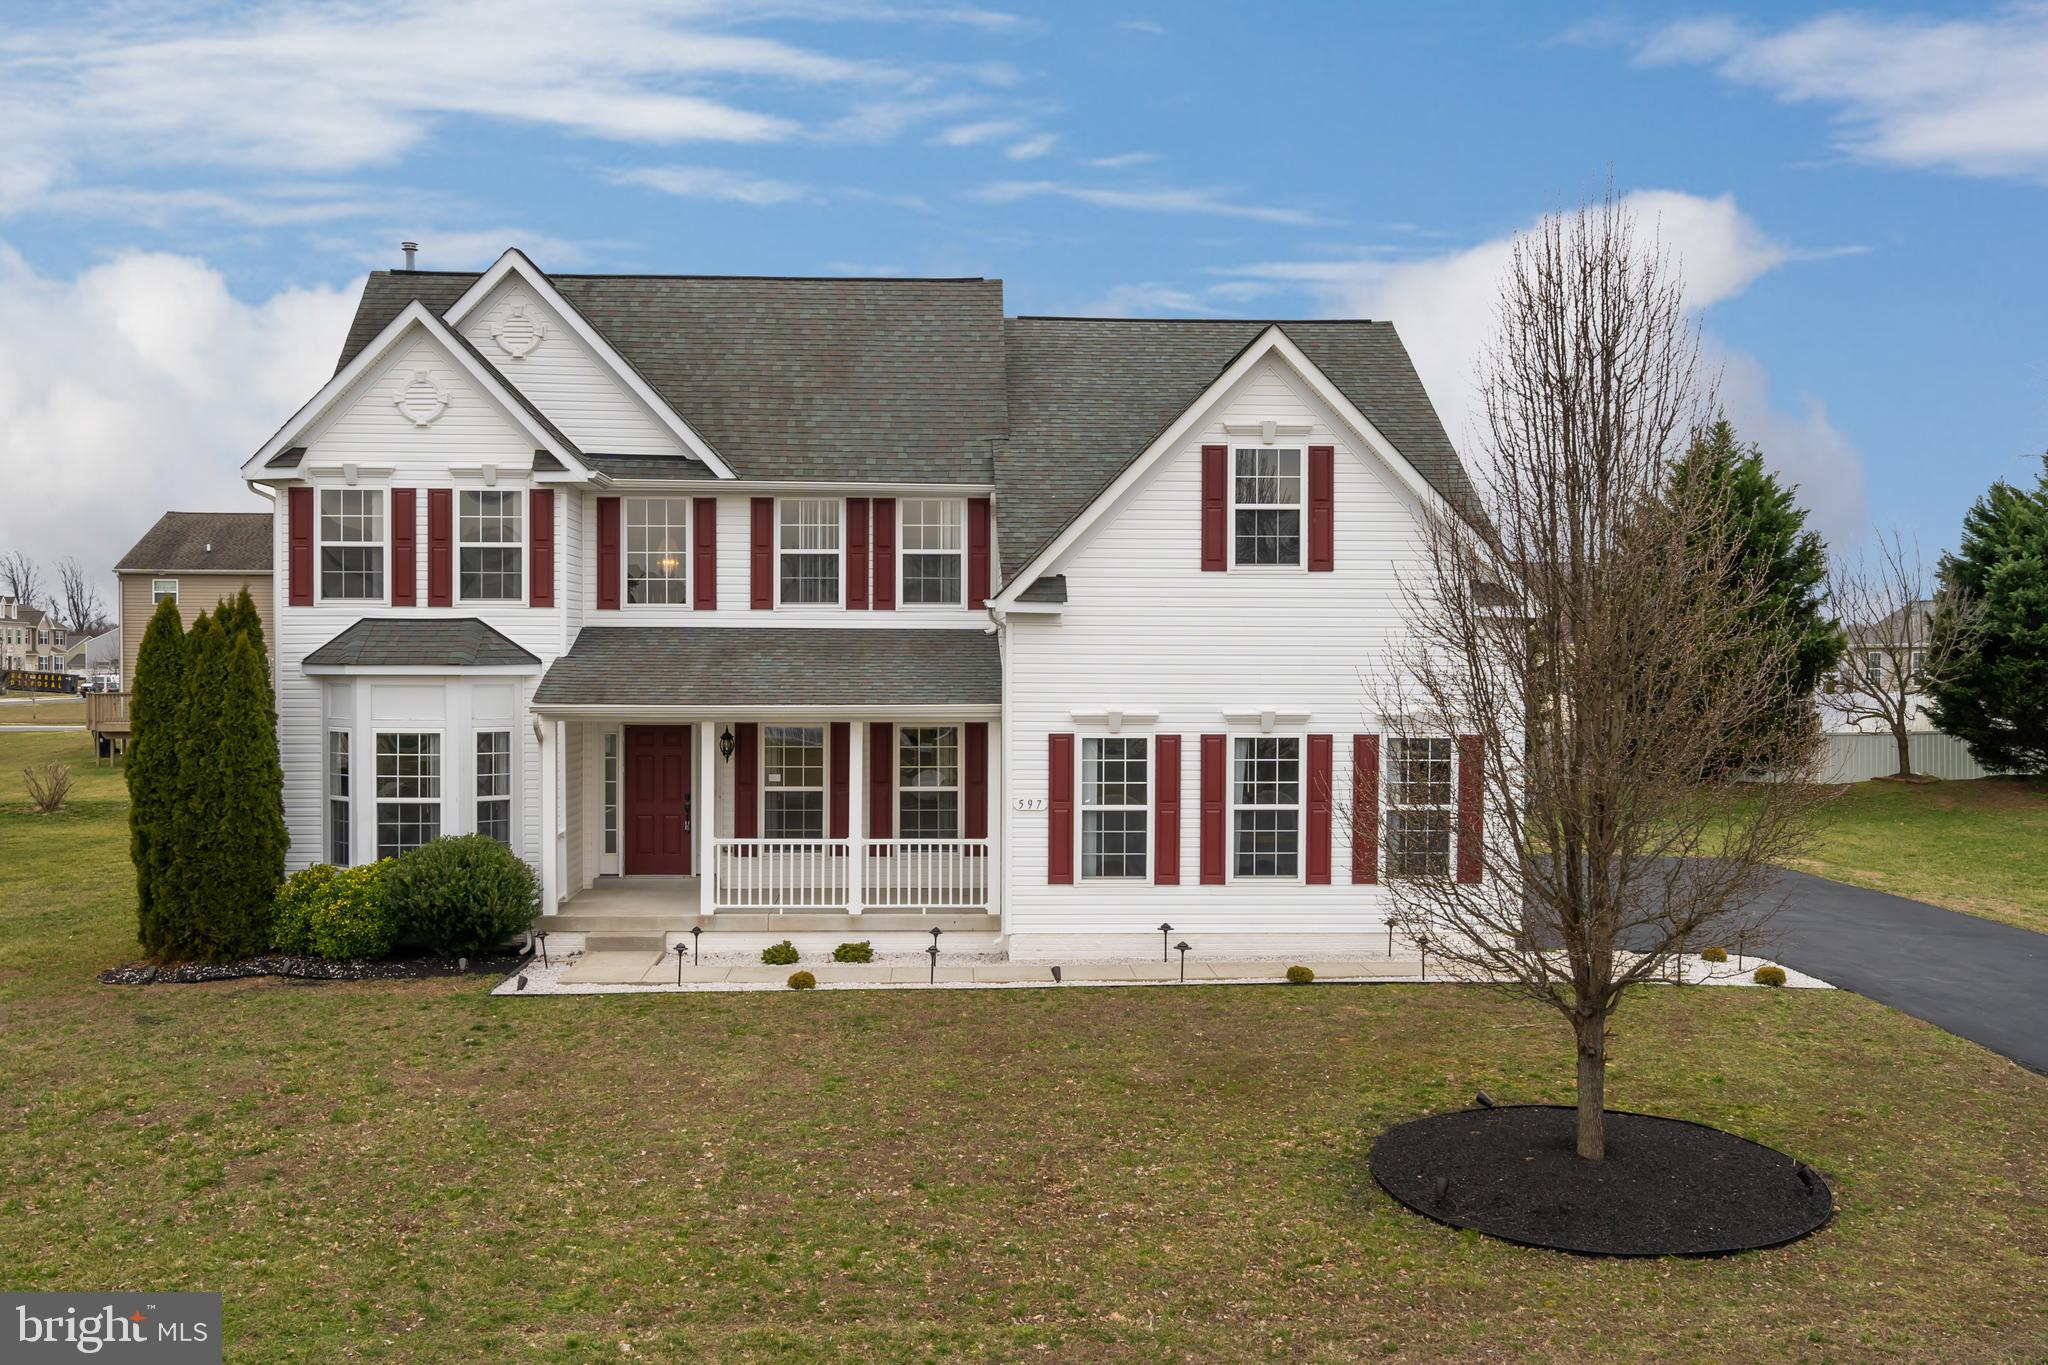 Magnificent home in Magnolia! Just 5 mins. off Rt. 1 and nearby to Scotton Landing boating access area and DAFB, yet tucked in peaceful alcove of countryside, this grand white siding/red shutter 2-story 5BRs/4 ~ bath home is one of few in community that touts this dramatic exterior. 1st glance leaves lasting impression! Turned 2-car garage keeps front clean-lined, while clusters of shrubs/evergreens sit to one side of home and ornamental tree on other side. Large white-railed porch decorates front. 2-story foyer sets stage for on-trend, on-point home! Contemporary edge, dramatic architectural elements and open floor plan offers modern, sought-after style home. Wide-plank cherry hardwoods contrast dramatically with cloud gray paint throughout. 2nd-level window highlights brass chandelier, crown molding and balcony overlook. To left is flex space with beautiful walk-in bay window; make it formal LR, 1st-floor office or retreat room. Opposite and through oversized entrance is DR with matching crown molding and chair rail. Plenty of space for intimate dinner parties or large dining events! Hall that leads back to main space consists of DD closet, PR with continued hardwoods, modern-edged cherry vanity that coordinates beautifully with floors, and access to LL. Plush carpeted steps lead down to pillared bottom floor that is amazing, finished and full footprint of home. Light polished hardwoods appear here and pillars are repeated throughout expansive room, creating continuity. Truly extra, entertaining square footage! Main space is huge as great game/rec room. Edging perimeter of main space are pocket rooms including full bath with shower and black vanity, angled DD BR with DD slider closet, work-area with cabinets, computer room/play room, huge under-the-steps closet and outside door to backyard. Simply smart space! Back of home on main level boasts vaulted-ceiling great room with stunning floor-to-ceiling chunky jutted gray/charcoal stone FP with polished ceramic tile 